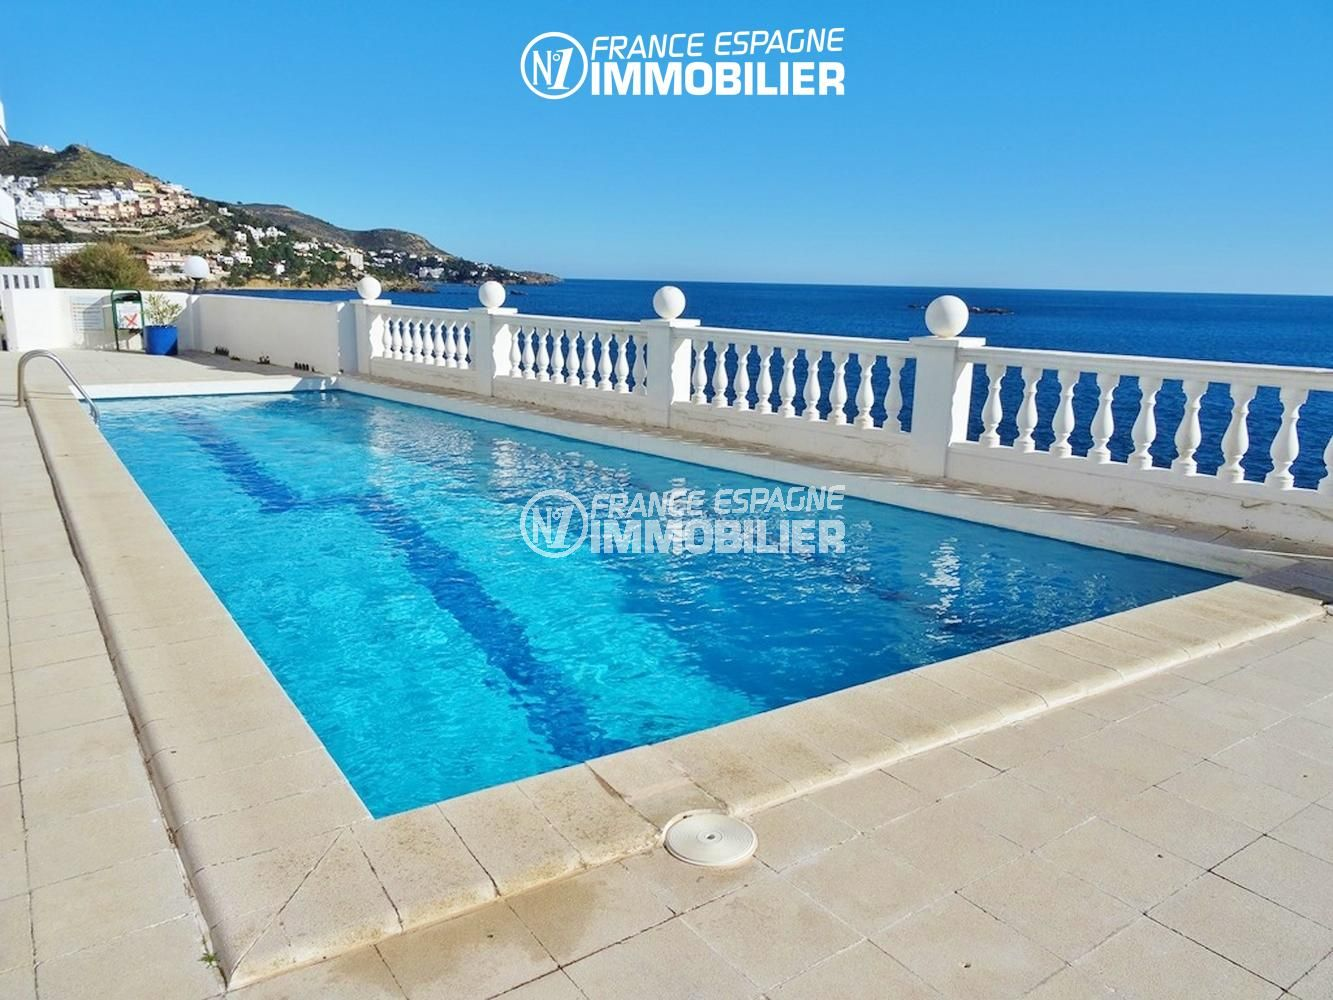 Vente Appartement Roses Vente Appartement Rosas Canyelles Vue Mer Proche Plage N1immo